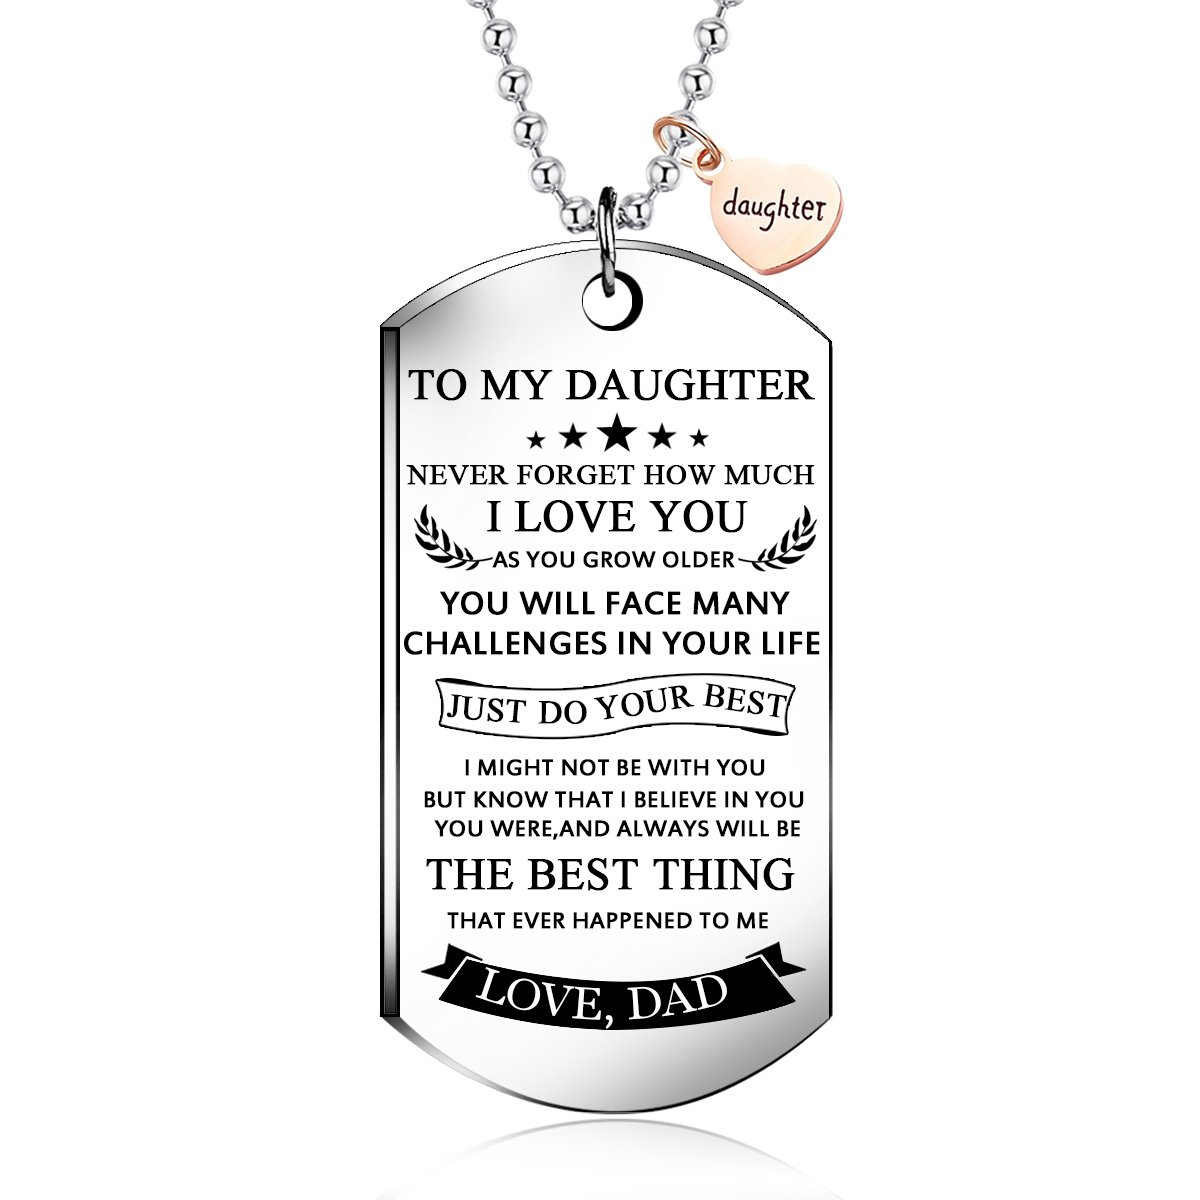 NOVLOVE To my daughter from dad Stainless Steel Dog Tag Letters To my daughter never forget how.love dad Pendant Necklace,Inspirational Gifts For daughter Jewelry